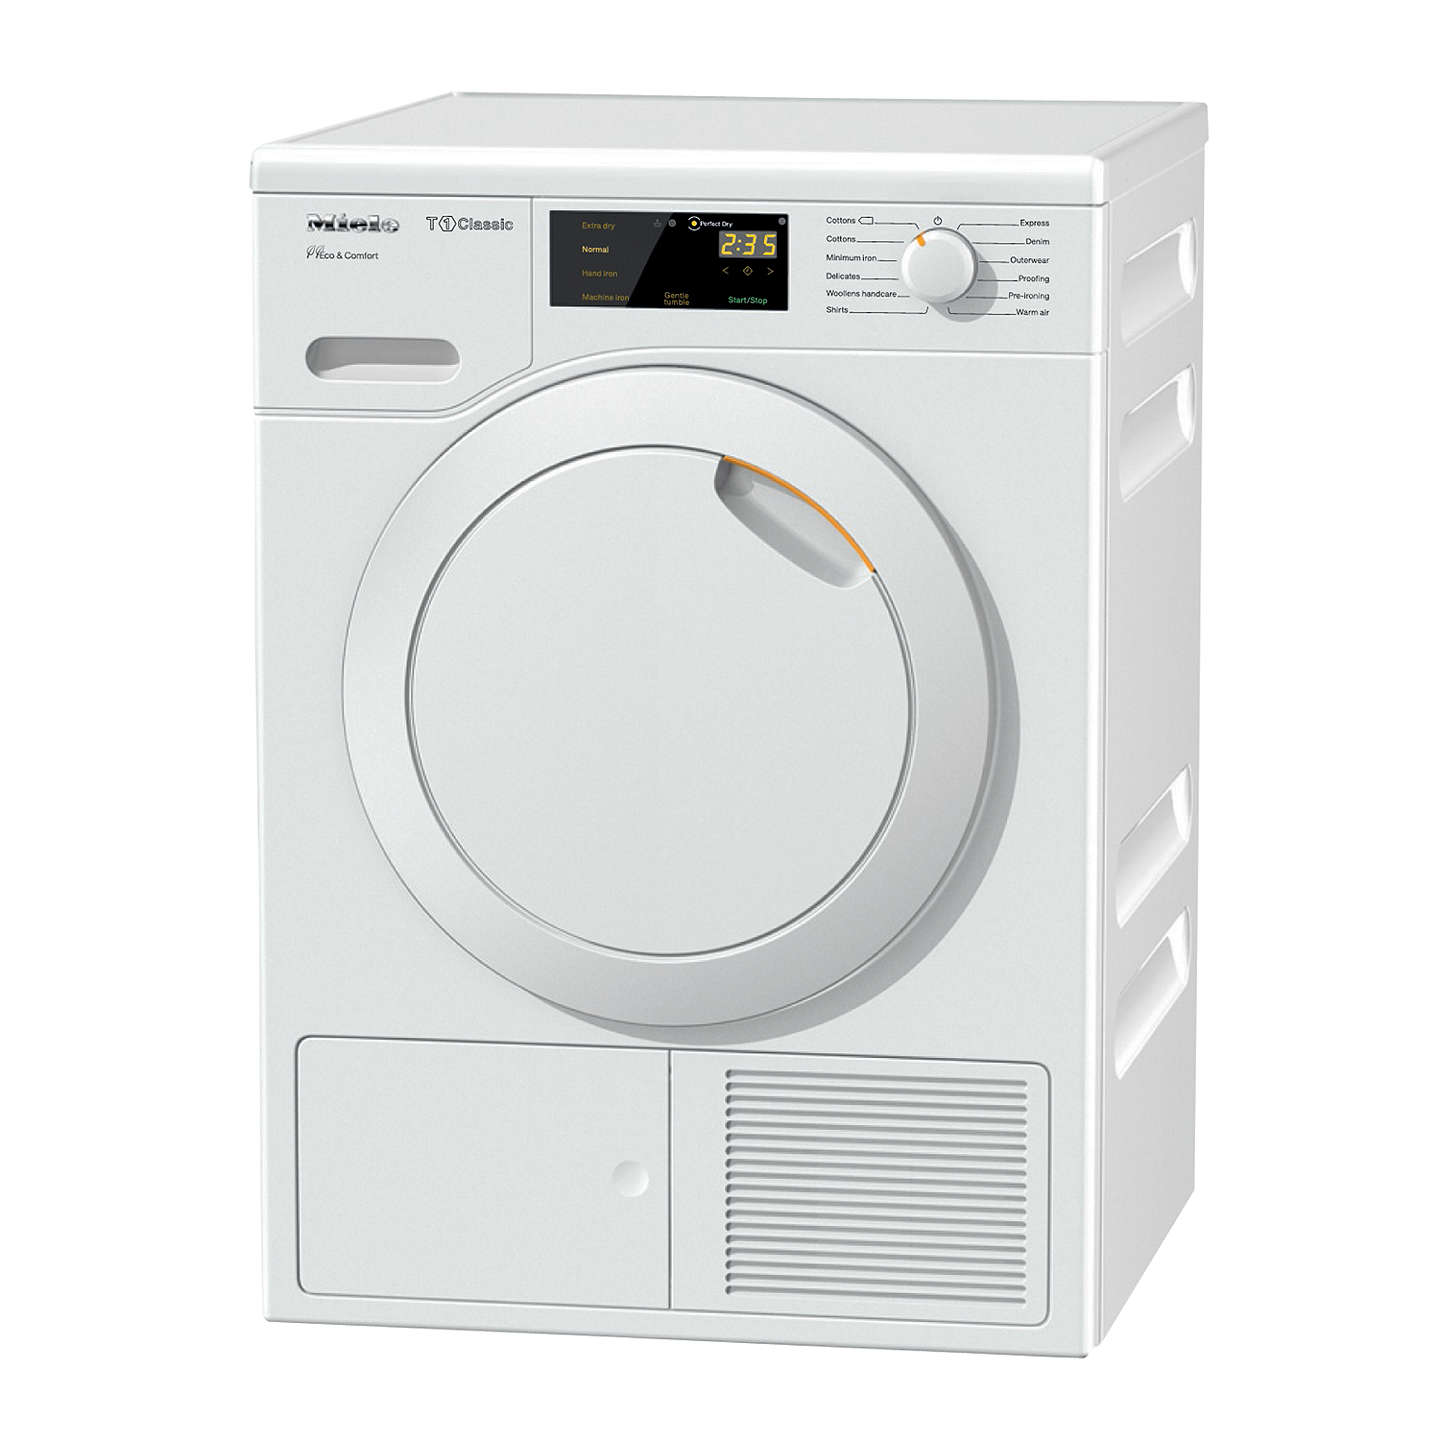 Buymiele Tdd120Wp Freestanding Tumble Dryer, 8Kg Load, A++ Energy Rating,